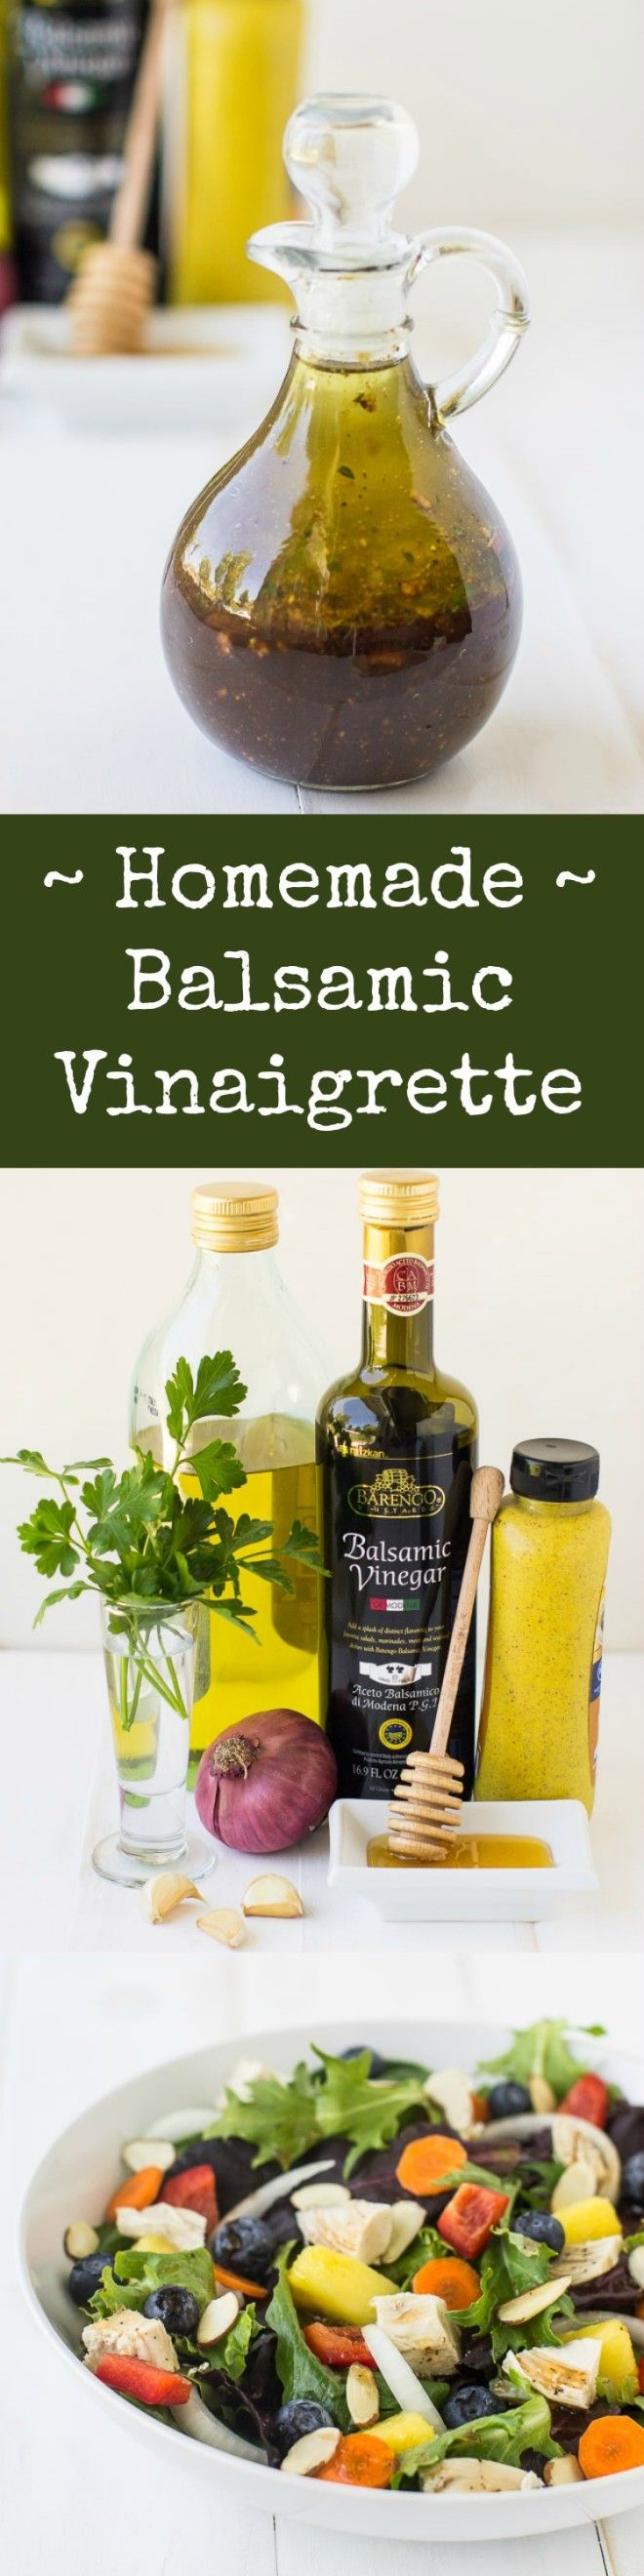 The ultimate in flavorful, healthful salad dressings! Fast and easy, this Homemade Balsamic Vinaigrette makes every salad more enjoyable.